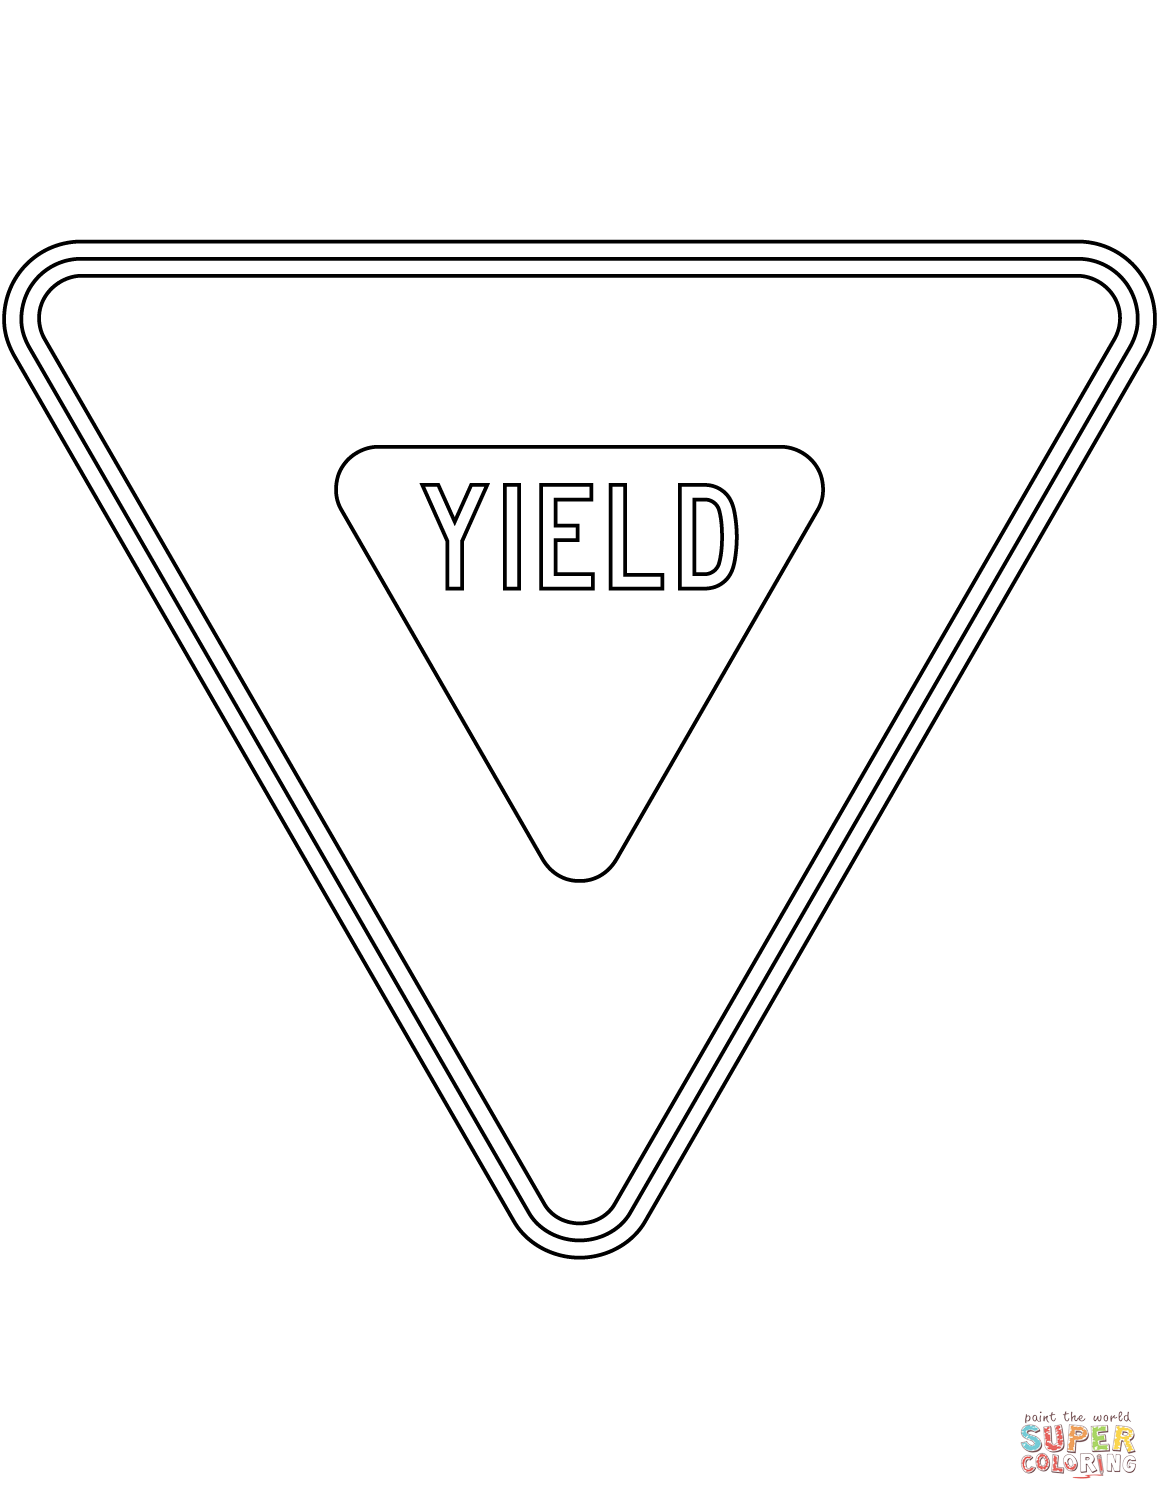 Yield Sign In The Usa Coloring Page